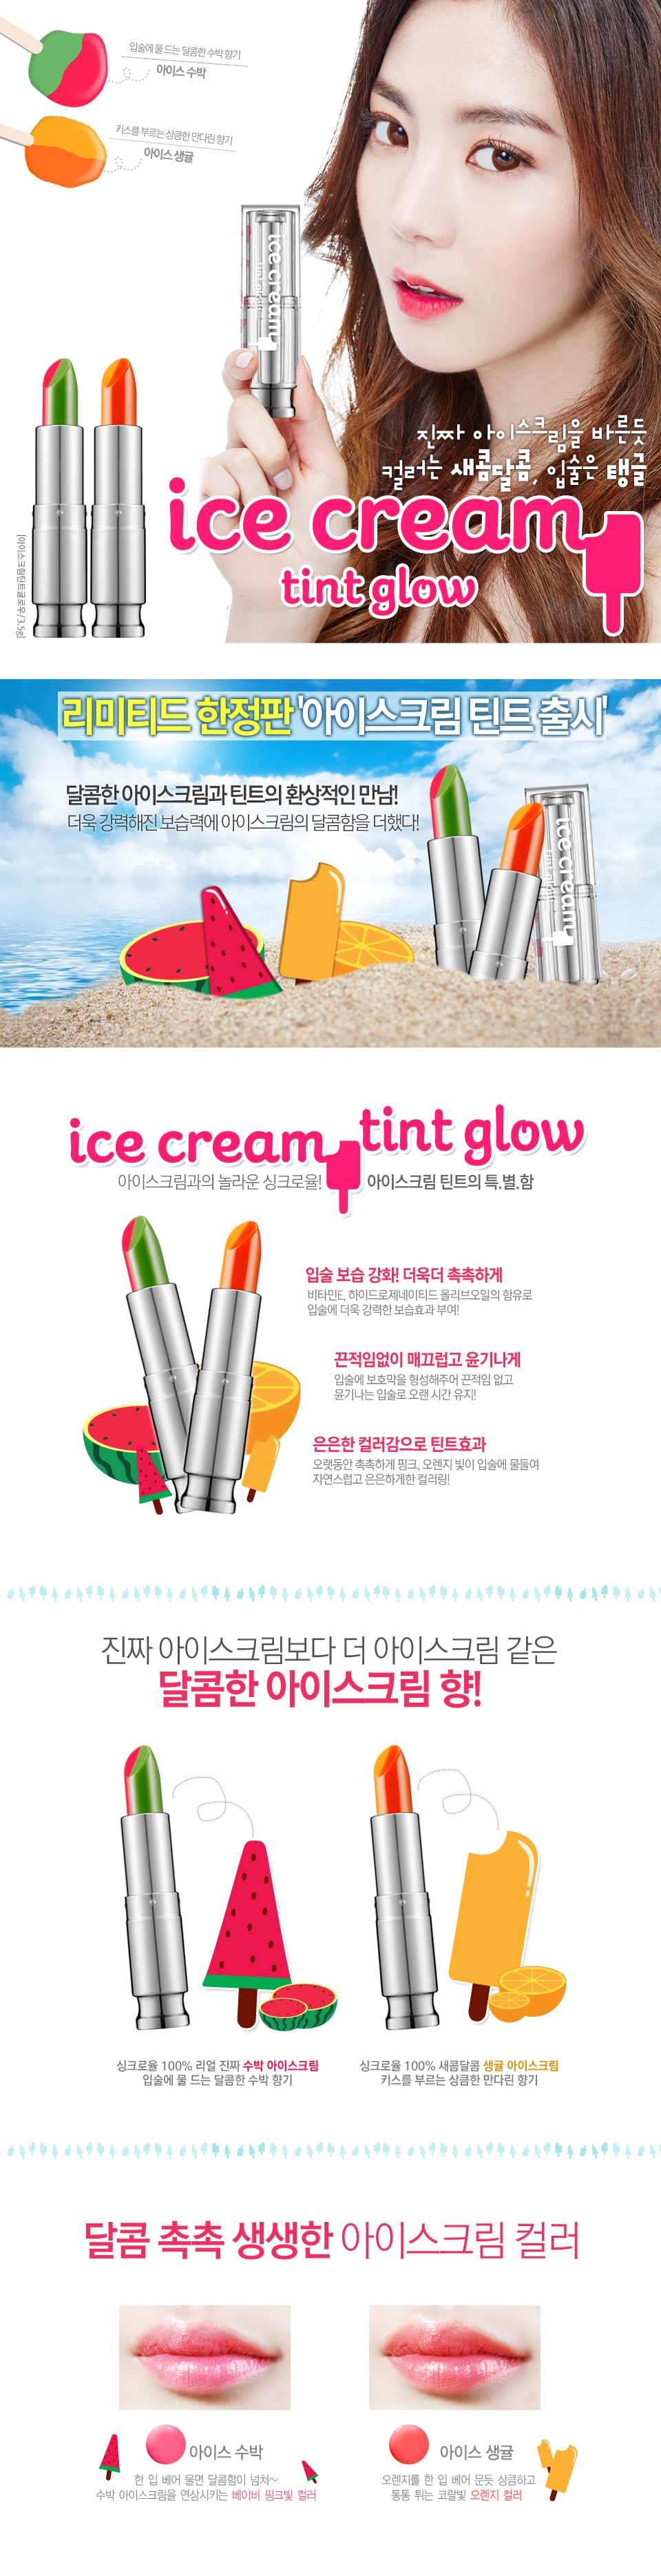 ice_cream_tint_glow-min